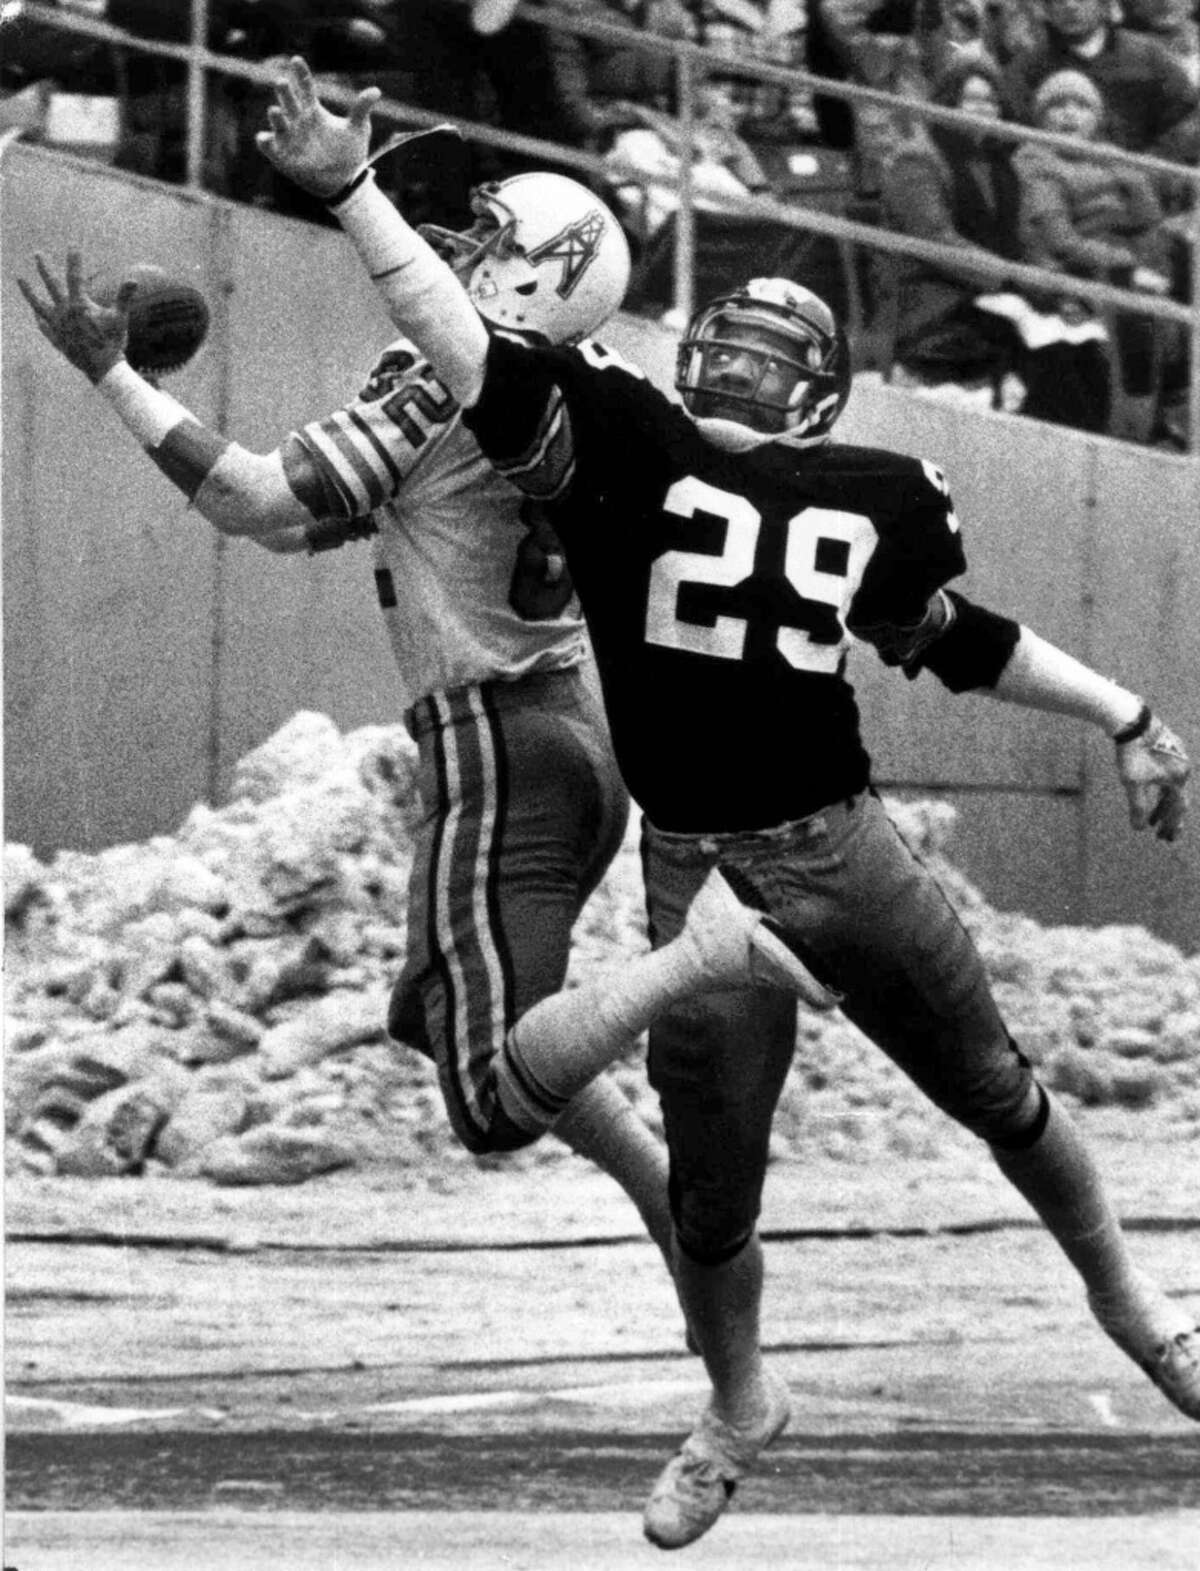 Mike Renfro's non-catch When: 1979 AFC championship at Pittsburgh The call: With the Oilers trailing 17-10 late in the third quarter, Renfro appeared to catch Dan Pastorini's pass in the back right corner of the end zone and come down in bounds for the apparent tying touchdown. Replays seemed to back that up, but the officials ruled Renfro didn't have control of the ball before going out of bounds. The Oilers had to settle for a field goal. The impact: Instead of being tied, the Oilers trailed by four and the Steelers added 10 points in the fourth quarter to seal their Super Bowl berth. Oilers players and fans to this day maintain Renfro caught the ball in bounds, and it's safe to say the game might've played out differently.